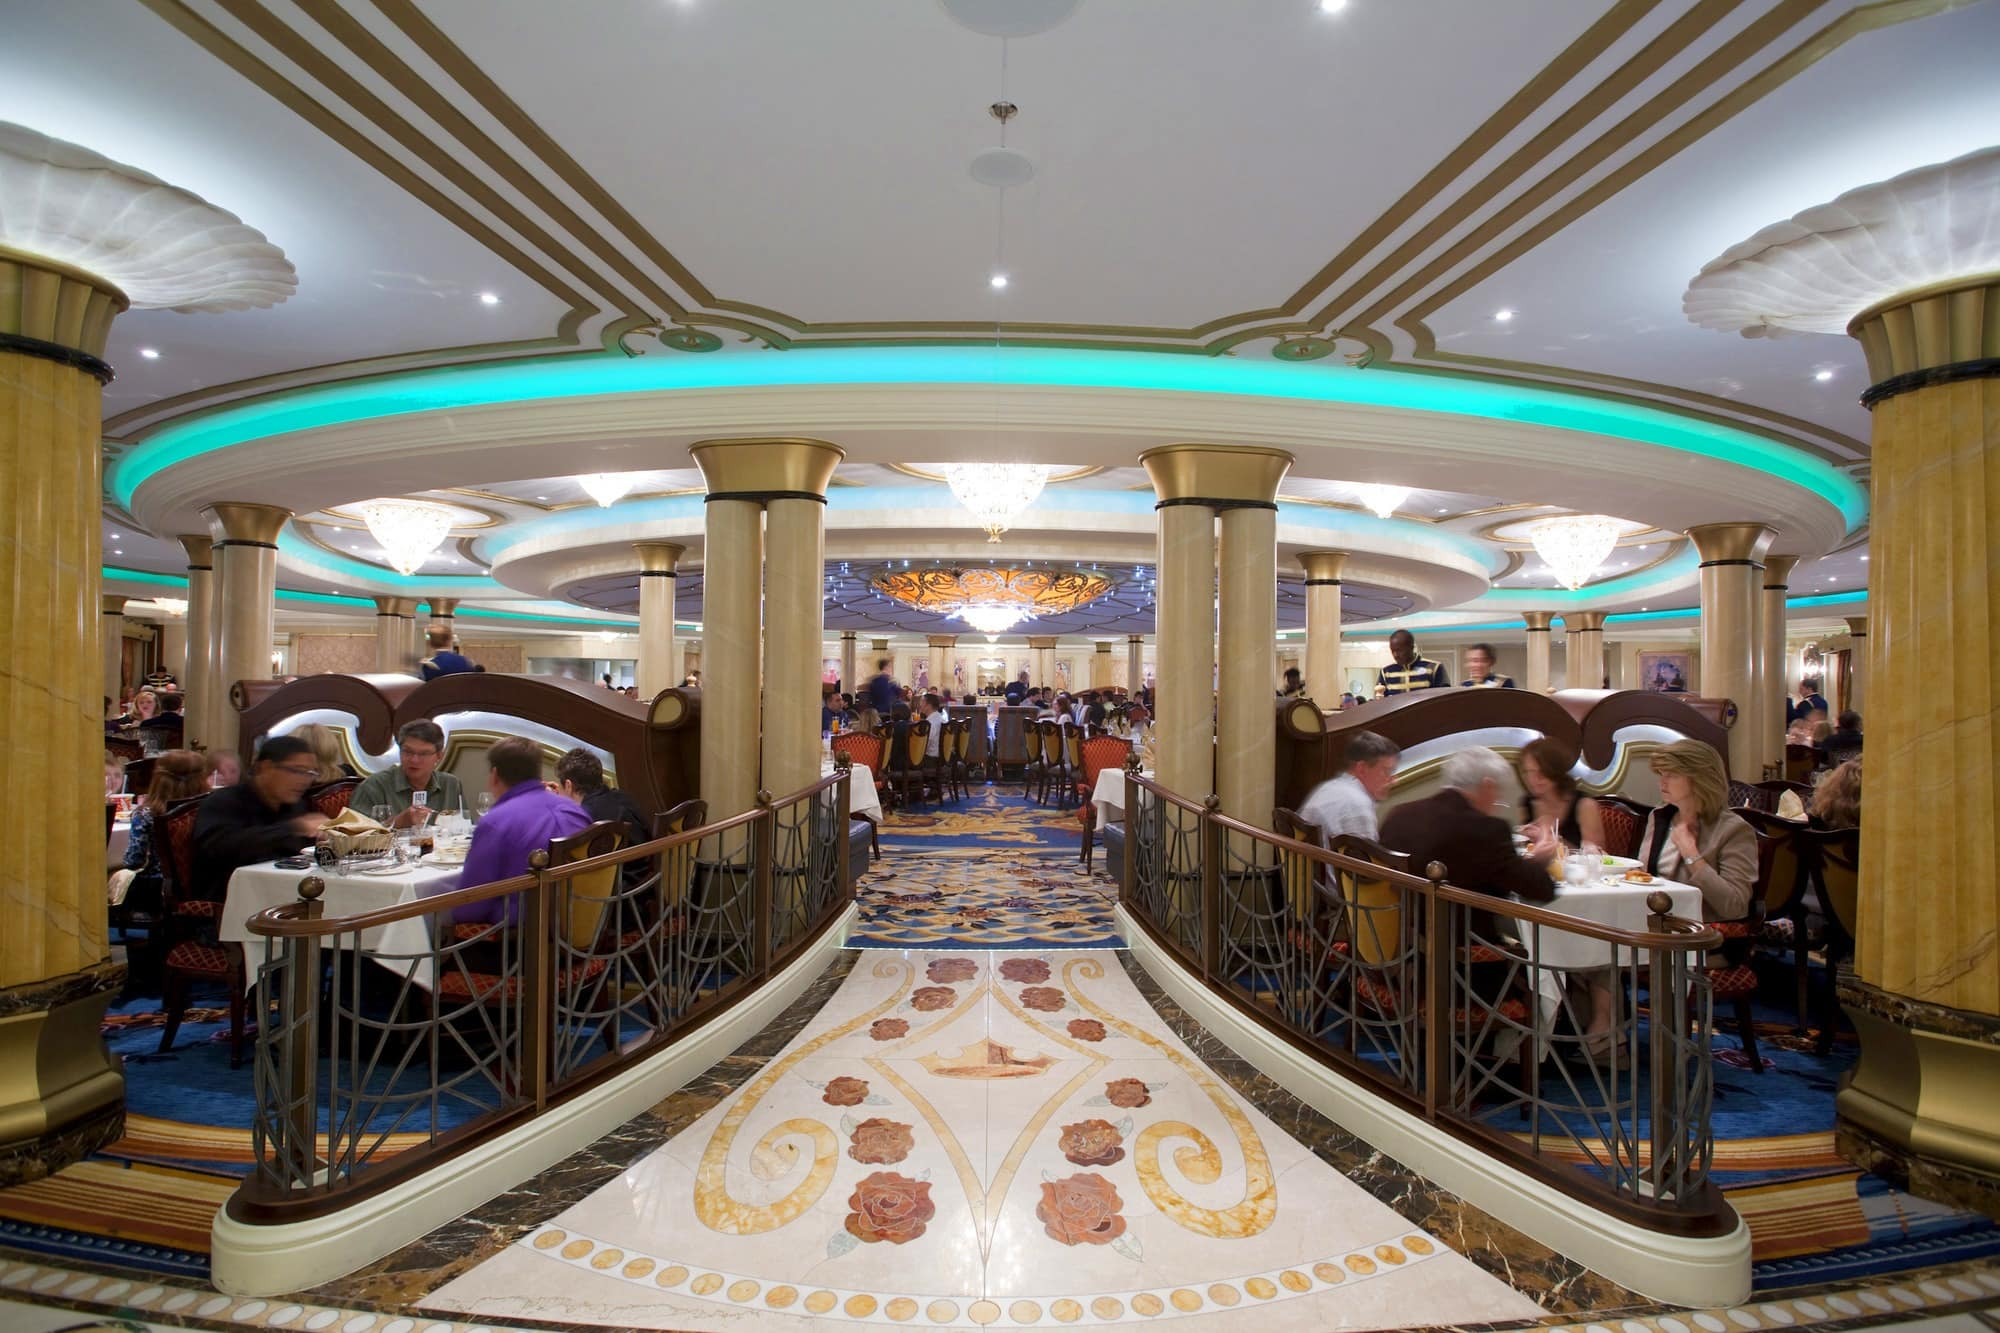 Feel like royalty when dining at the Royal Palace on Disney Dream with babies, toddlers and children